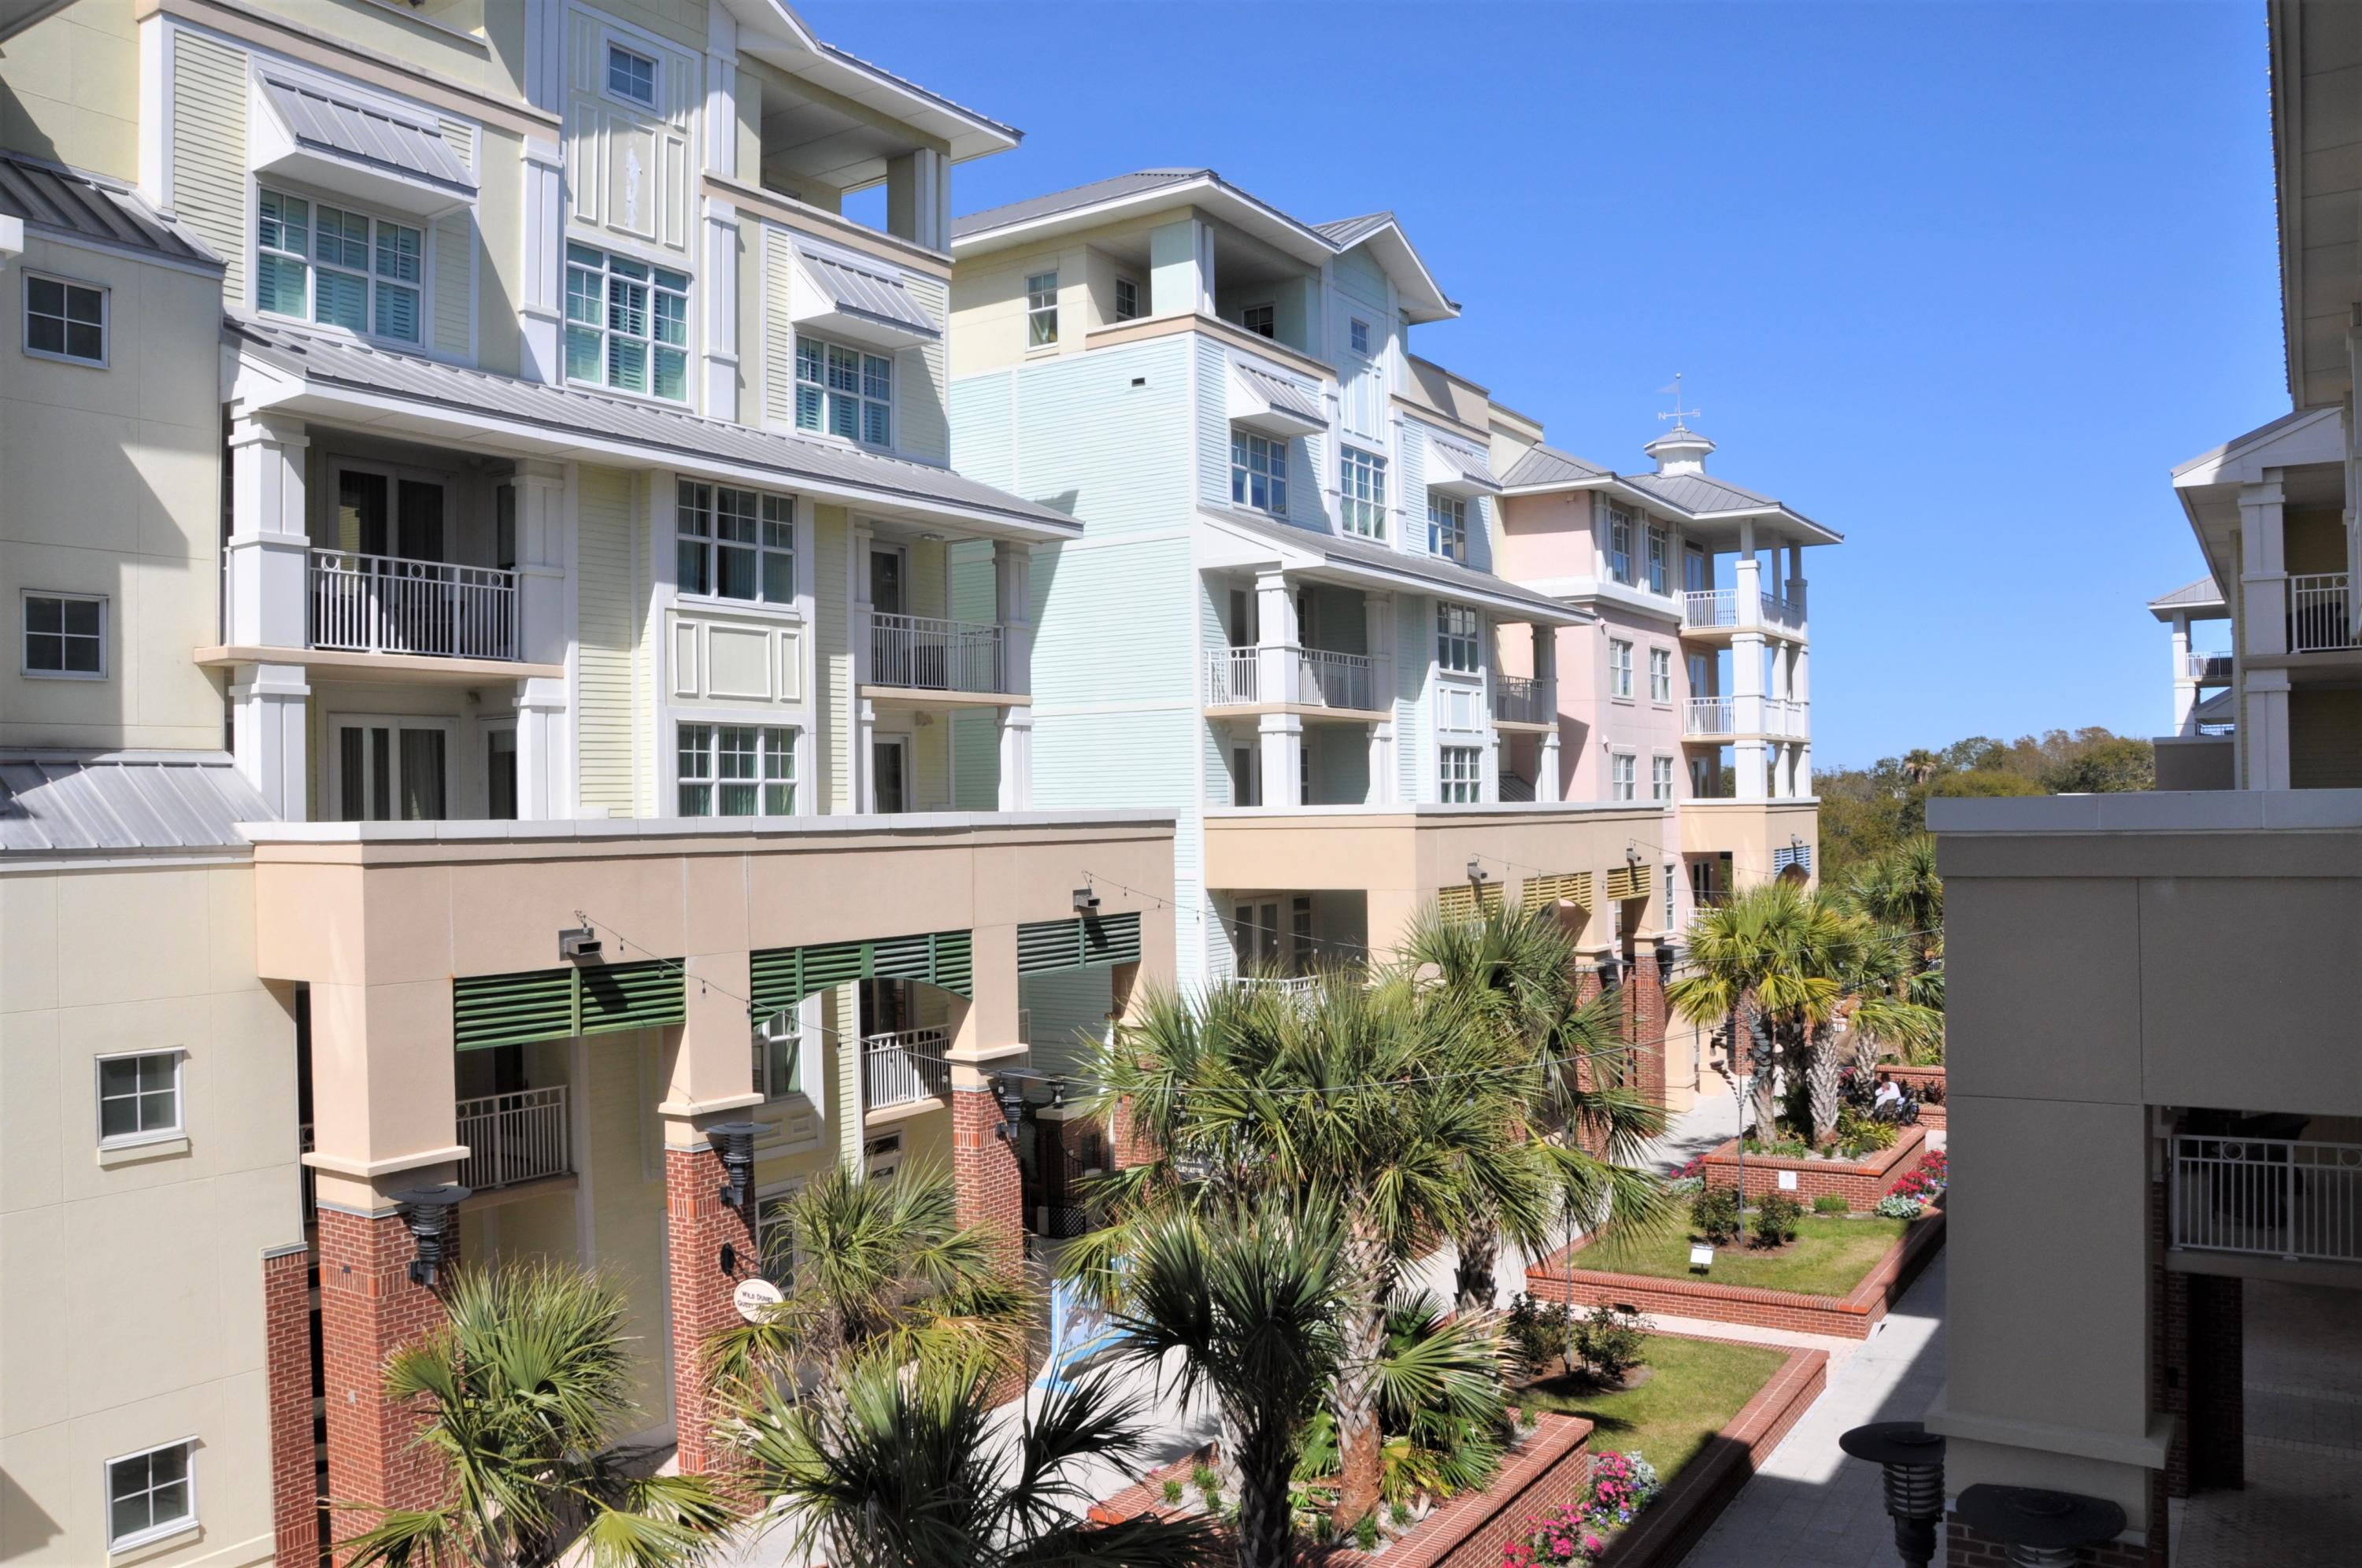 302 B Village At Wild Dunes Isle Of Palms, SC 29451